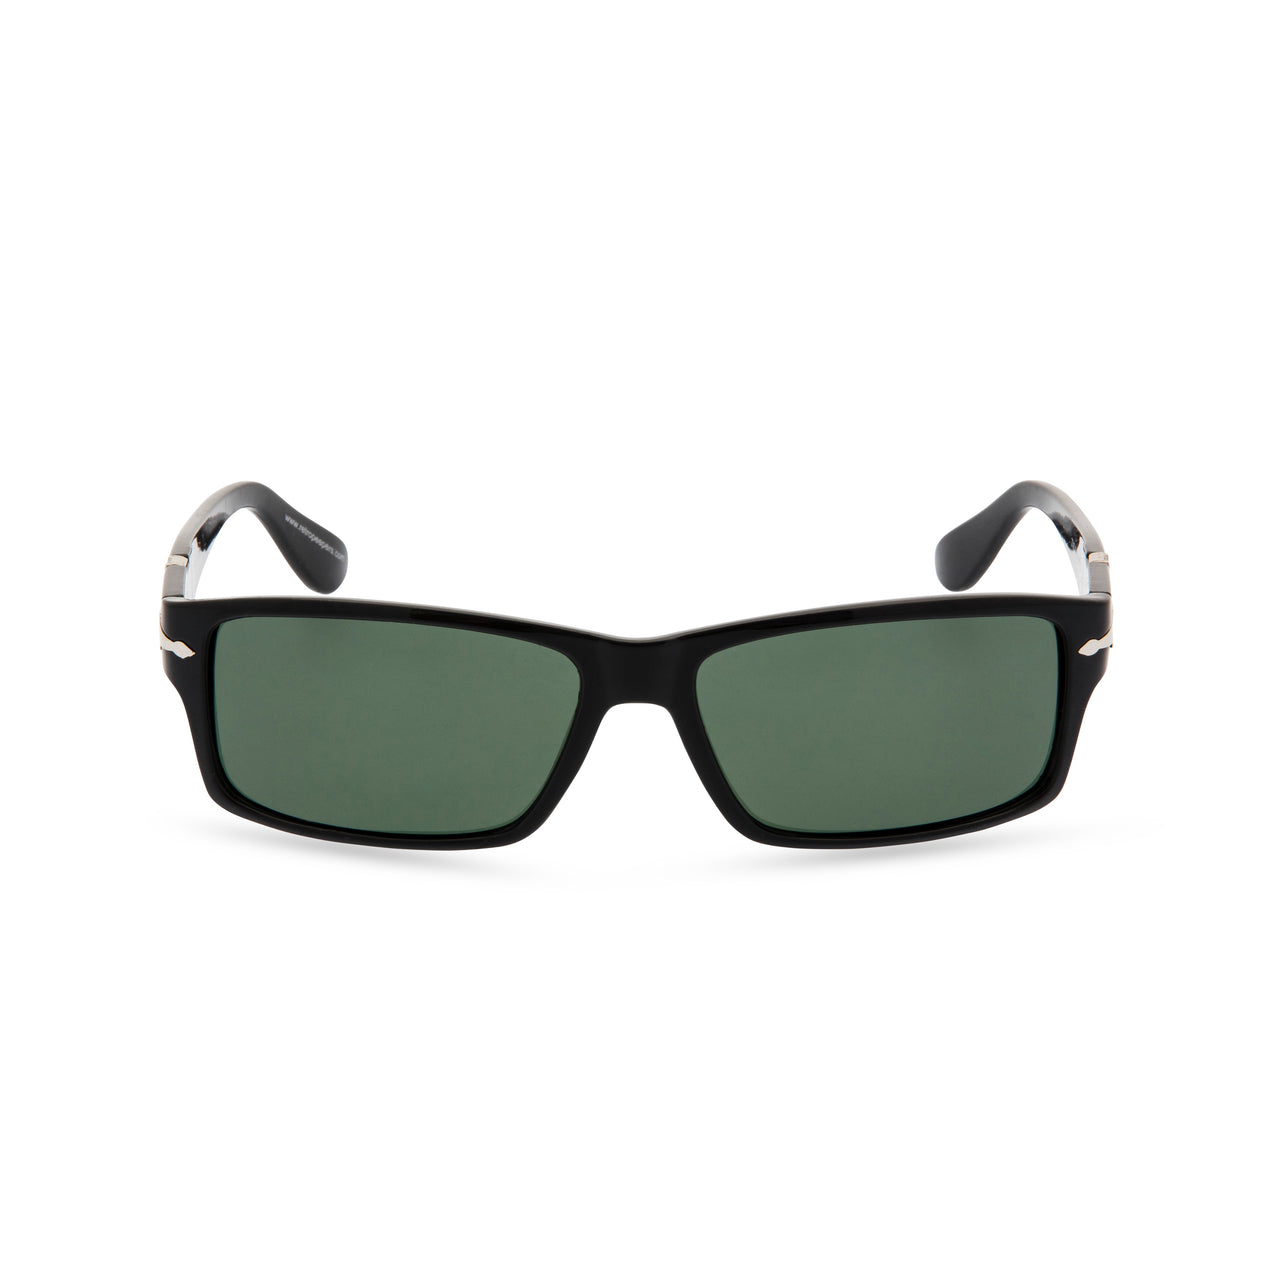 James B - Sunglasses Shiny Black / Green lens